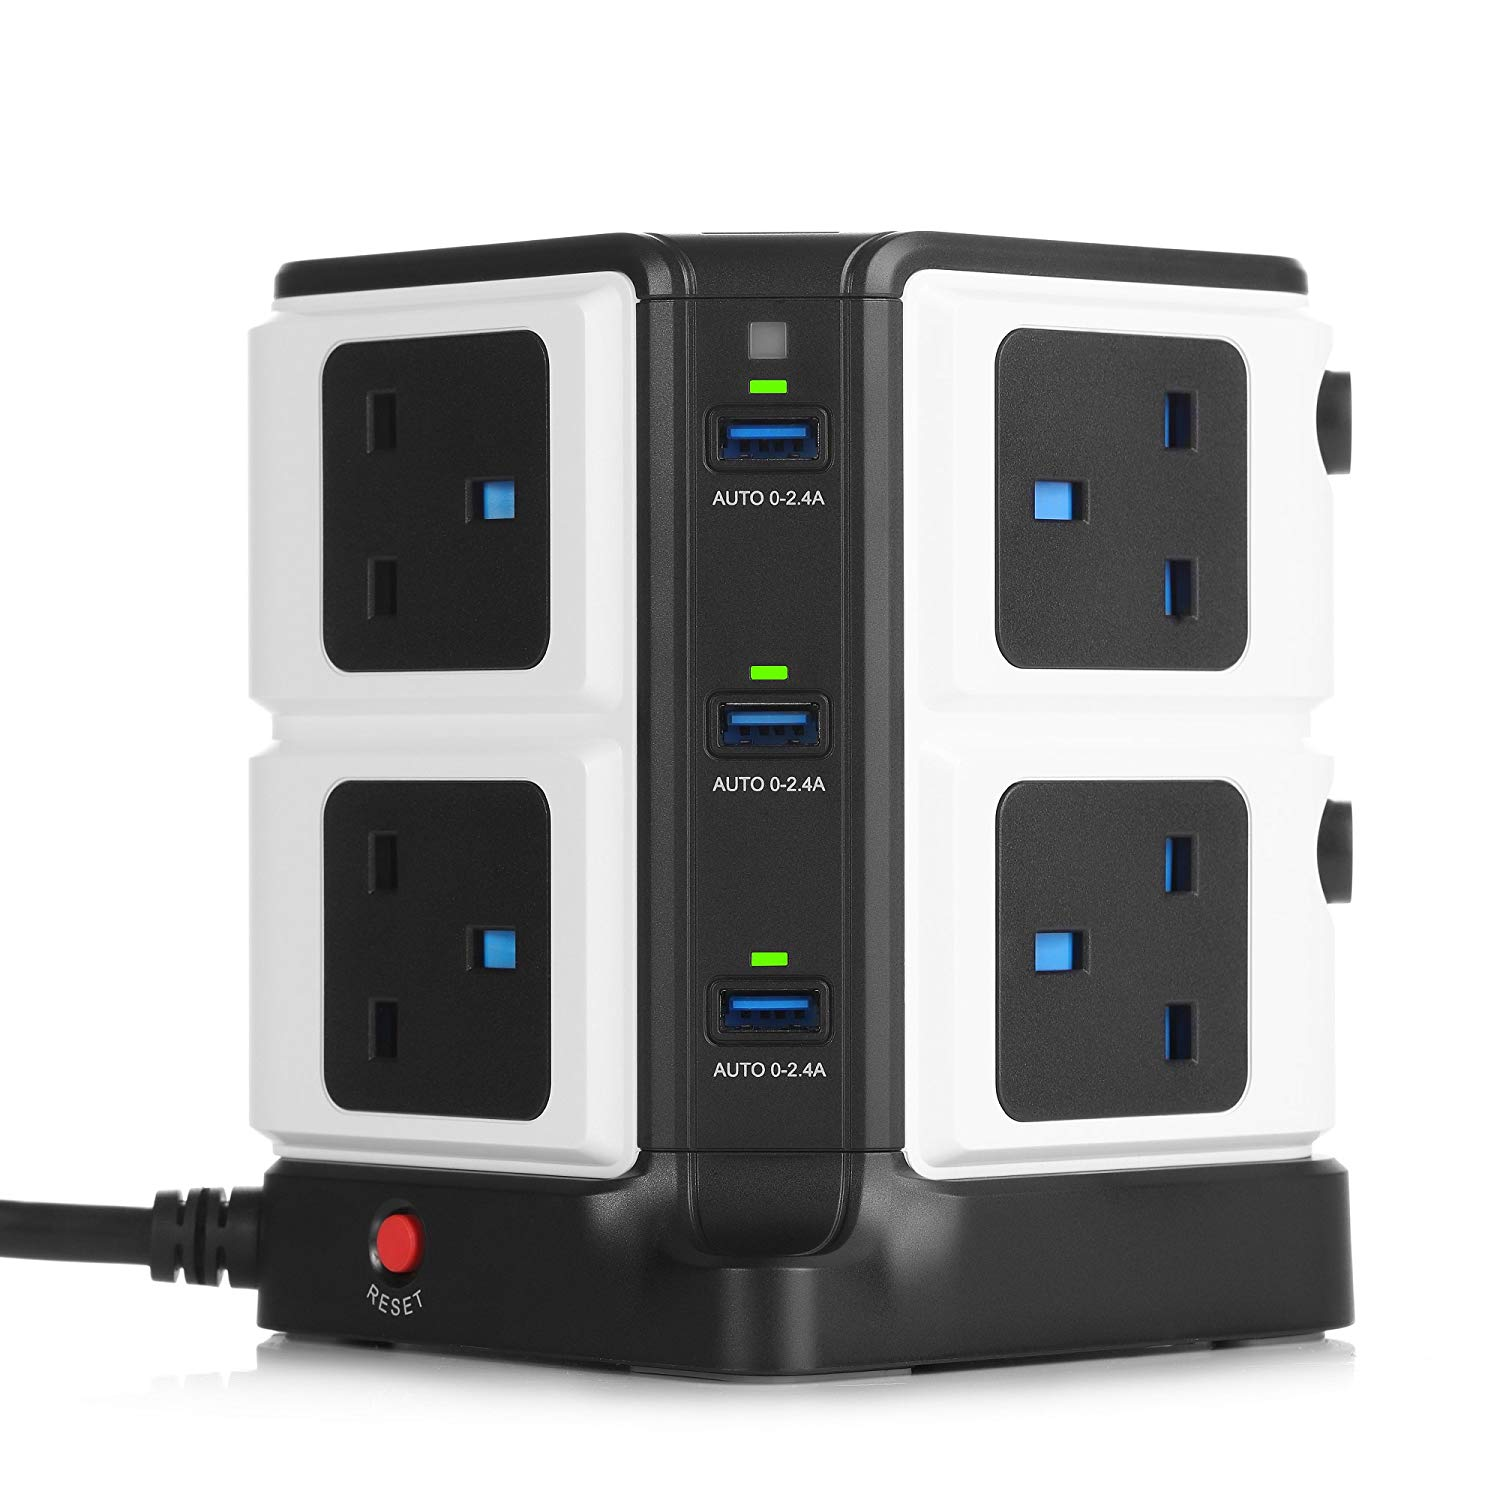 BESTEK 8 Way Surge Protected Tower Extension with 6-Port (5V/8A) USB Power Strip 3250W/1.8M-Black